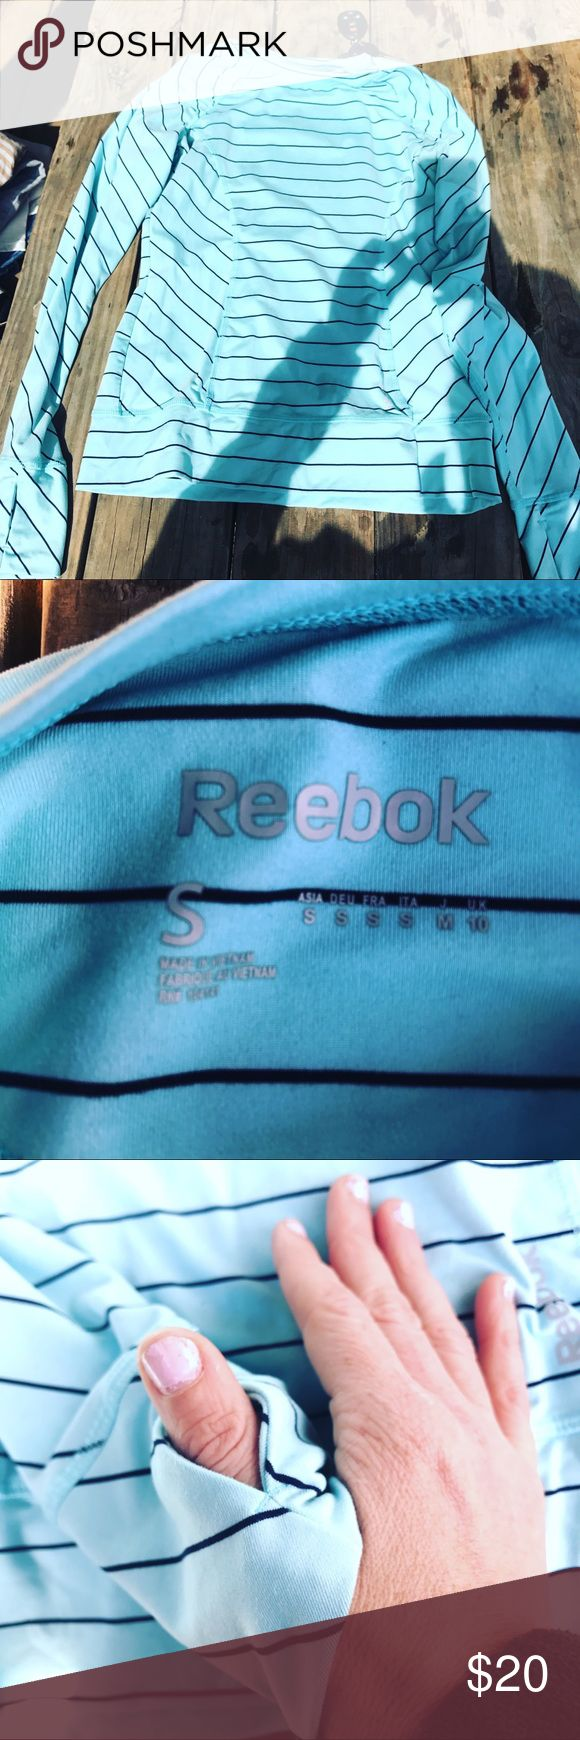 Small Reebox running shirt with hand covers Smoke and animal free home reebox Tops